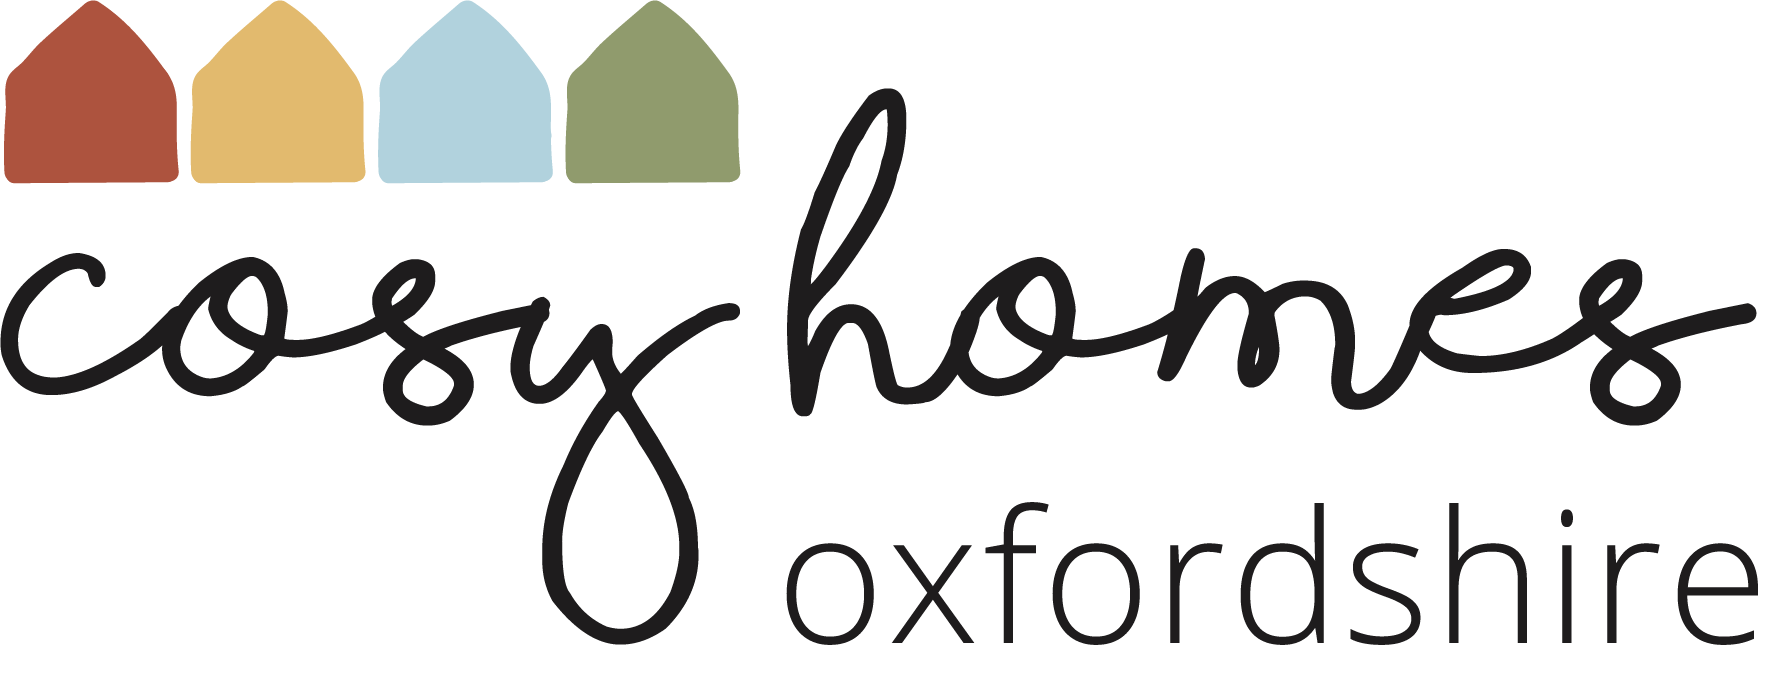 Cosy Homes Oxfordshire